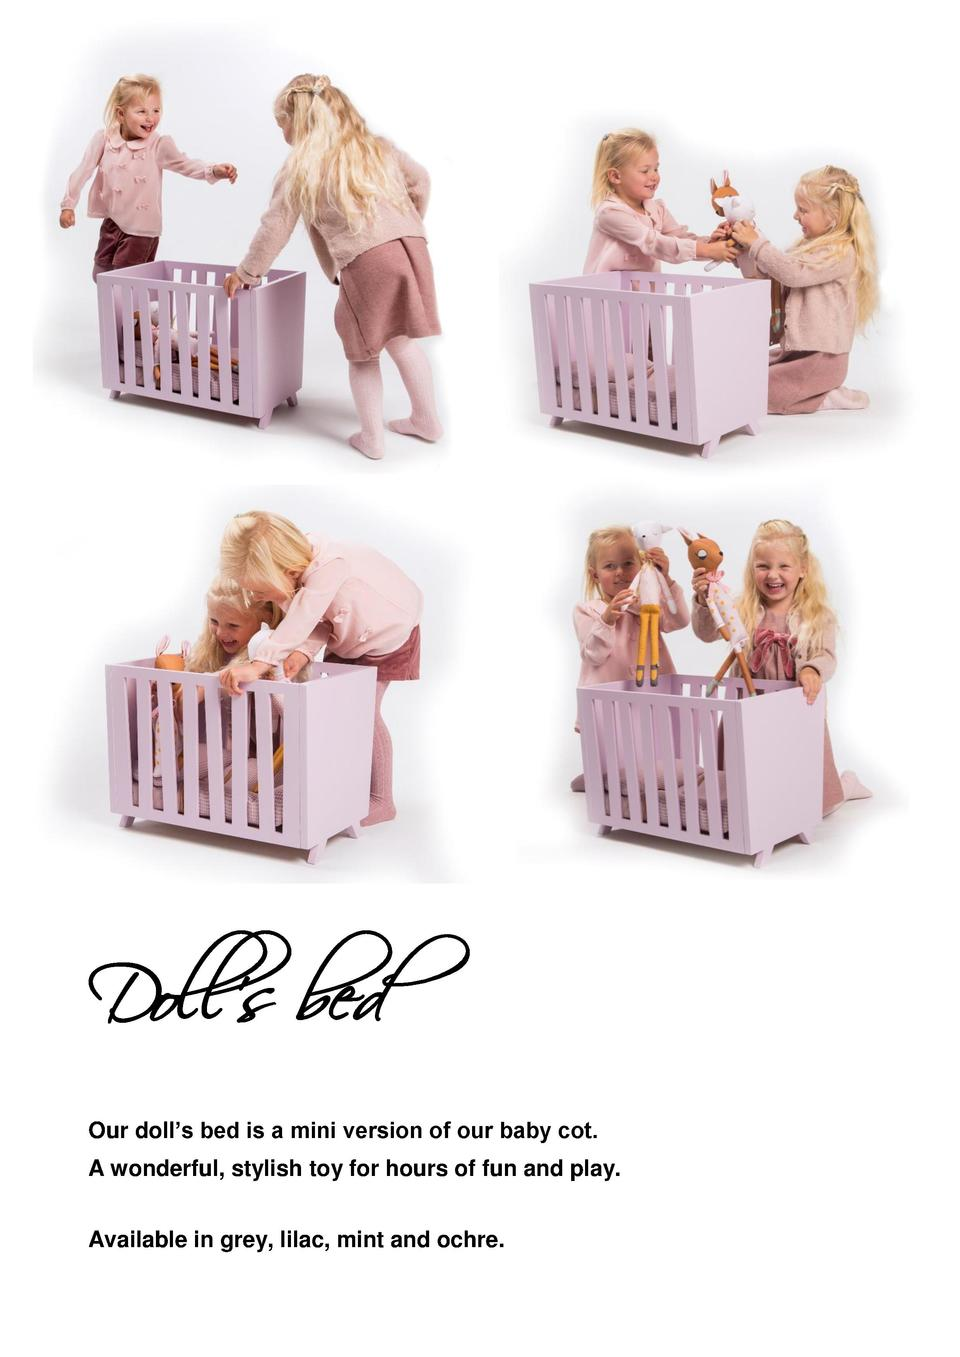 Doll s bed Our doll   s bed is a mini version of our baby cot. A wonderful, stylish toy for hours of fun and play. Availab...